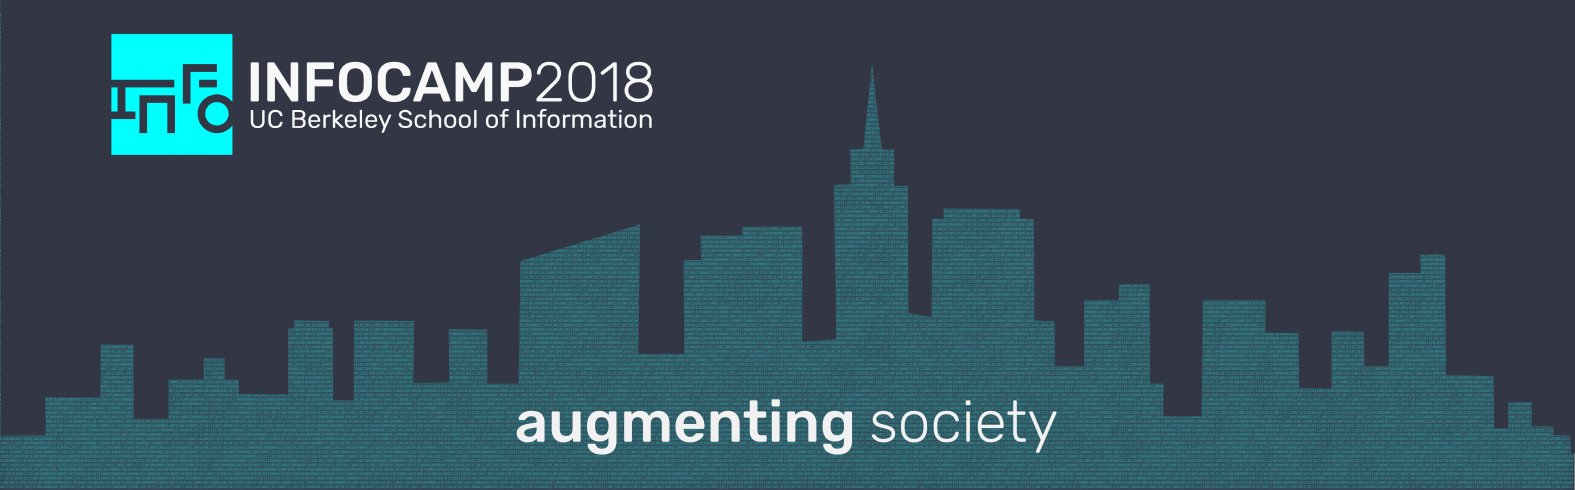 InfoCamp 2018: Augmenting Society